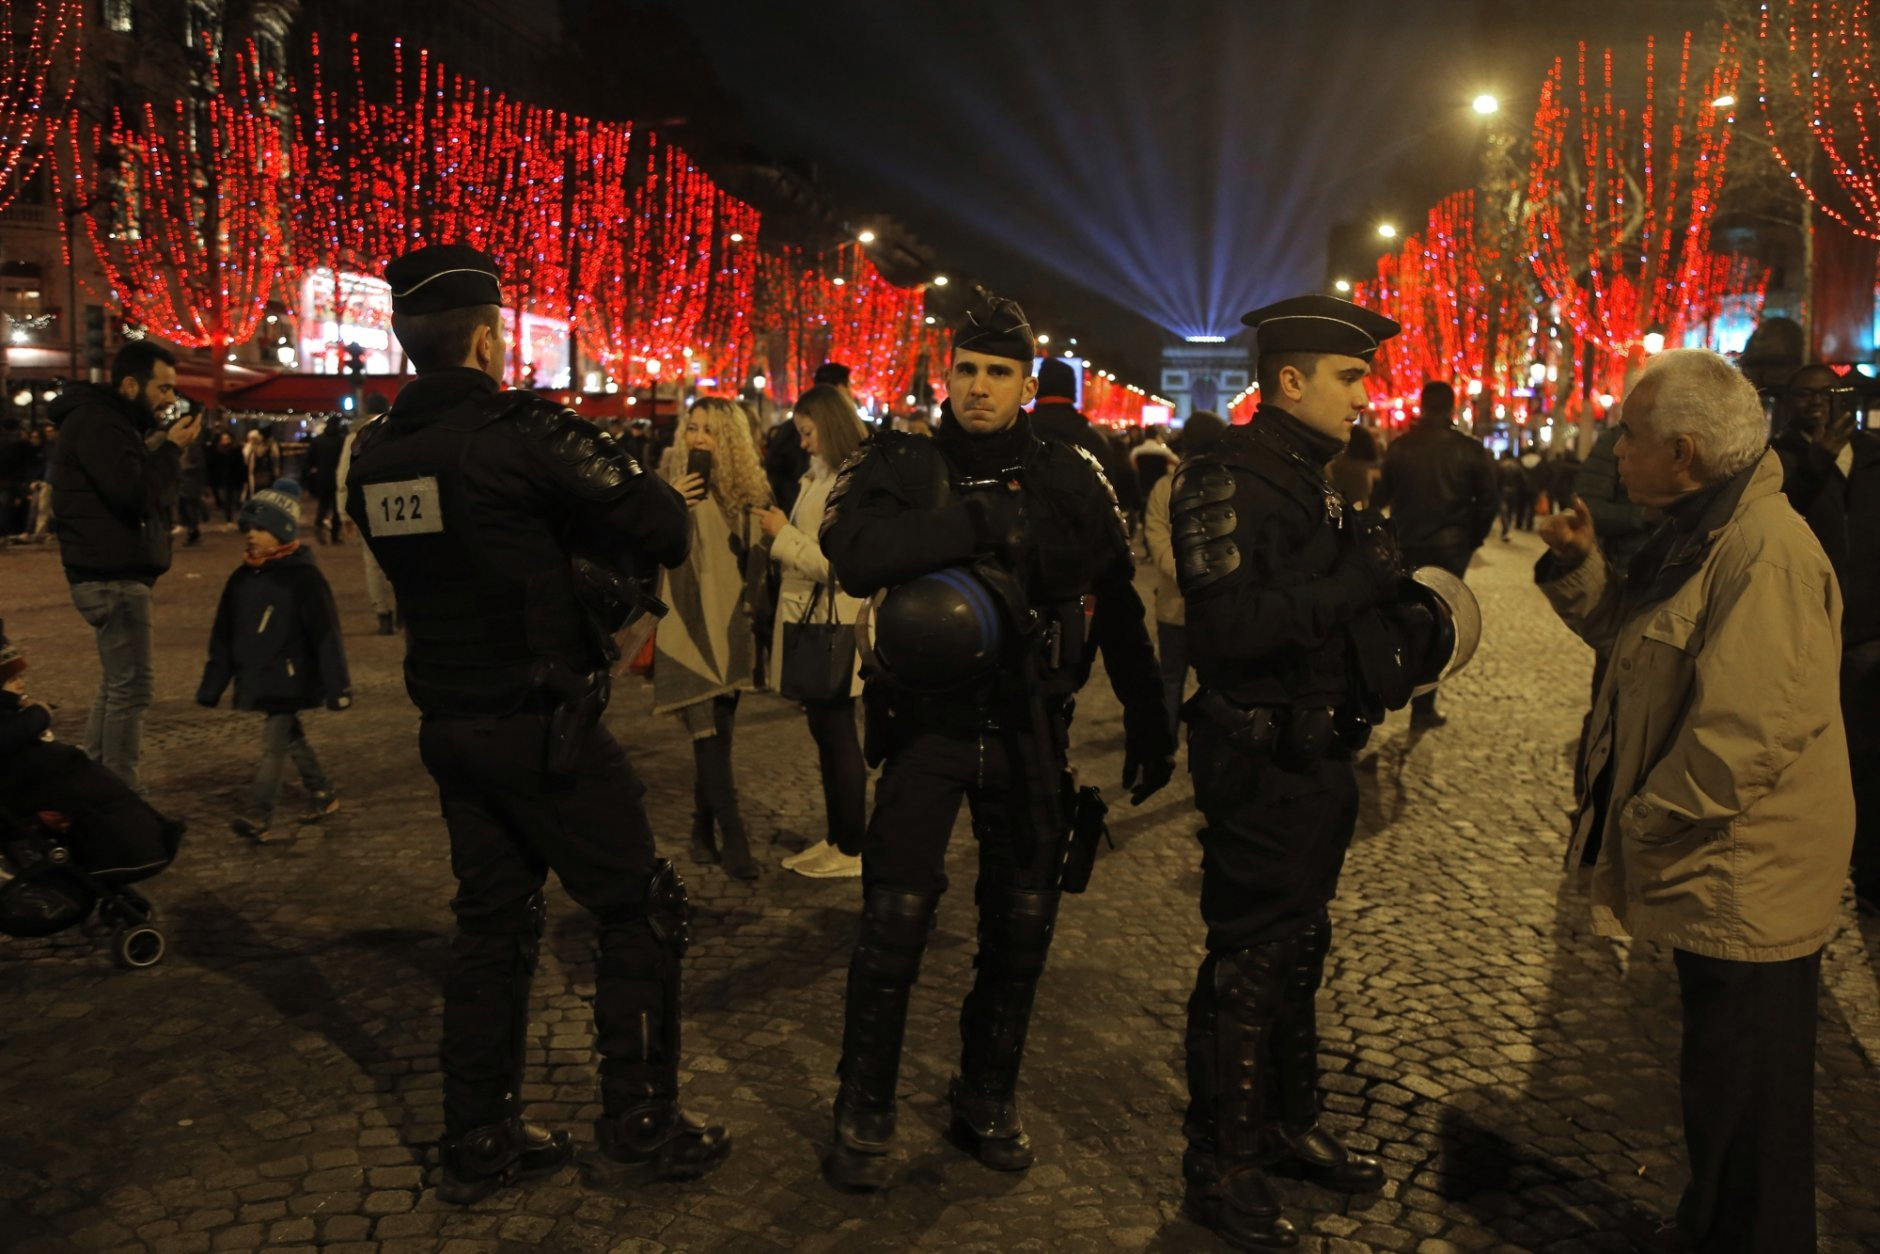 French policemen stand guard before the New Year's Day celebrations on the Champs Elysees, in Paris, Monday, Dec. 31, 2018. Paris is preparing to hold its annual New Year's Eve celebrations on the Champs-Elysees under heavy security as some yellow vest protesters are planning to march on the famed avenue. (AP Photo/Michel Euler)